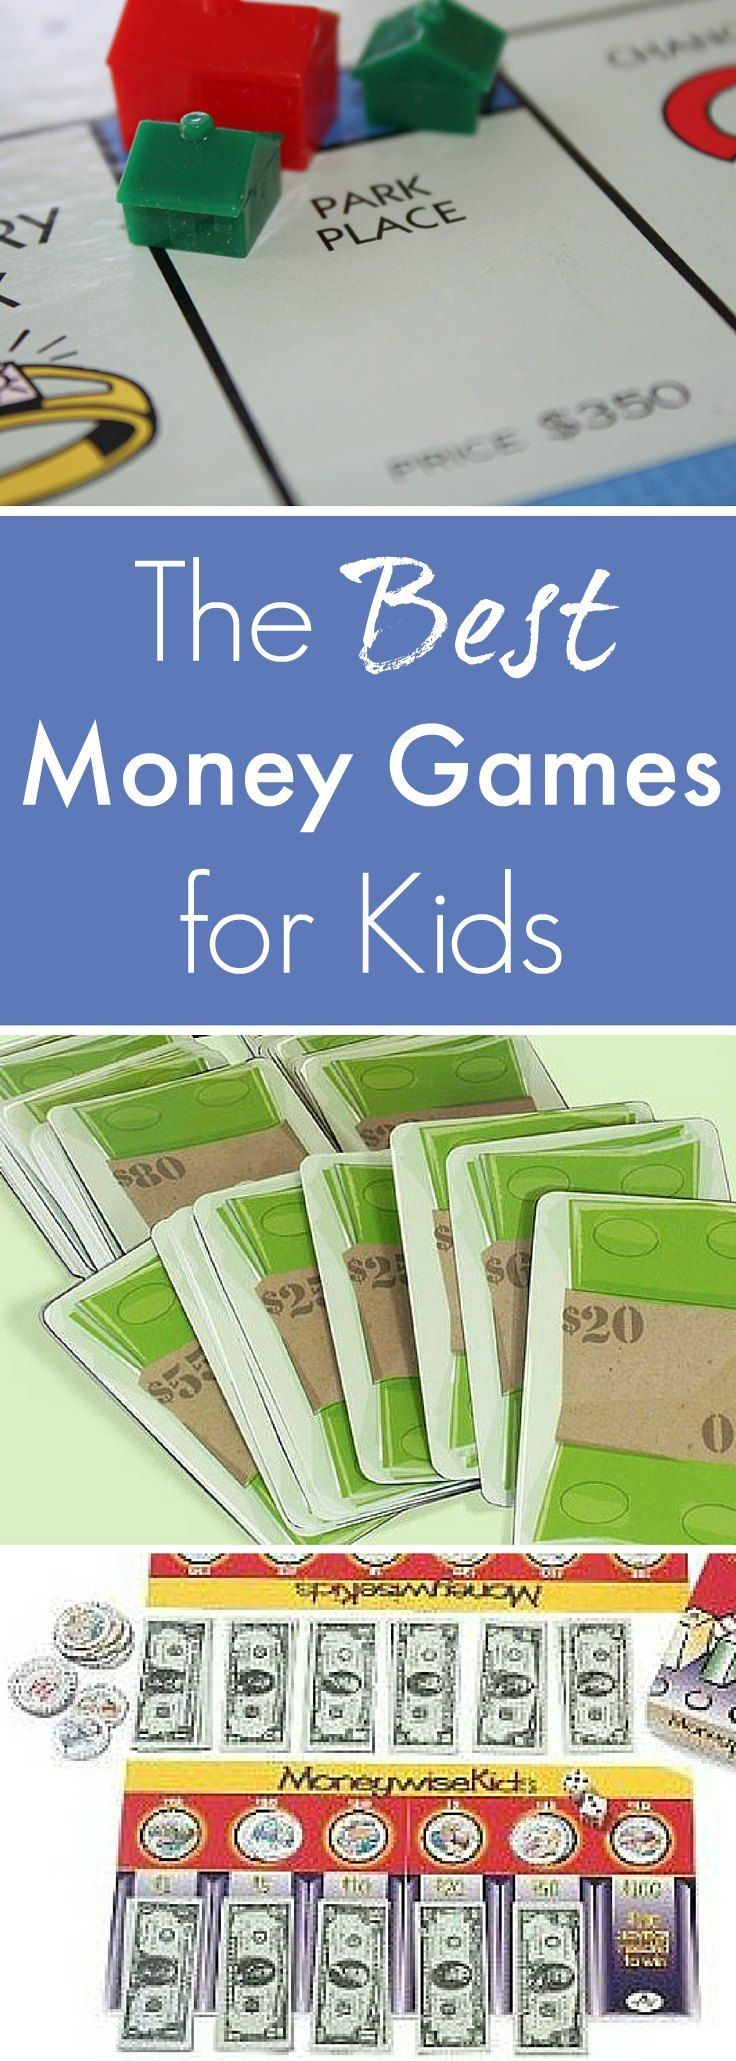 The Best Money Games for Kids